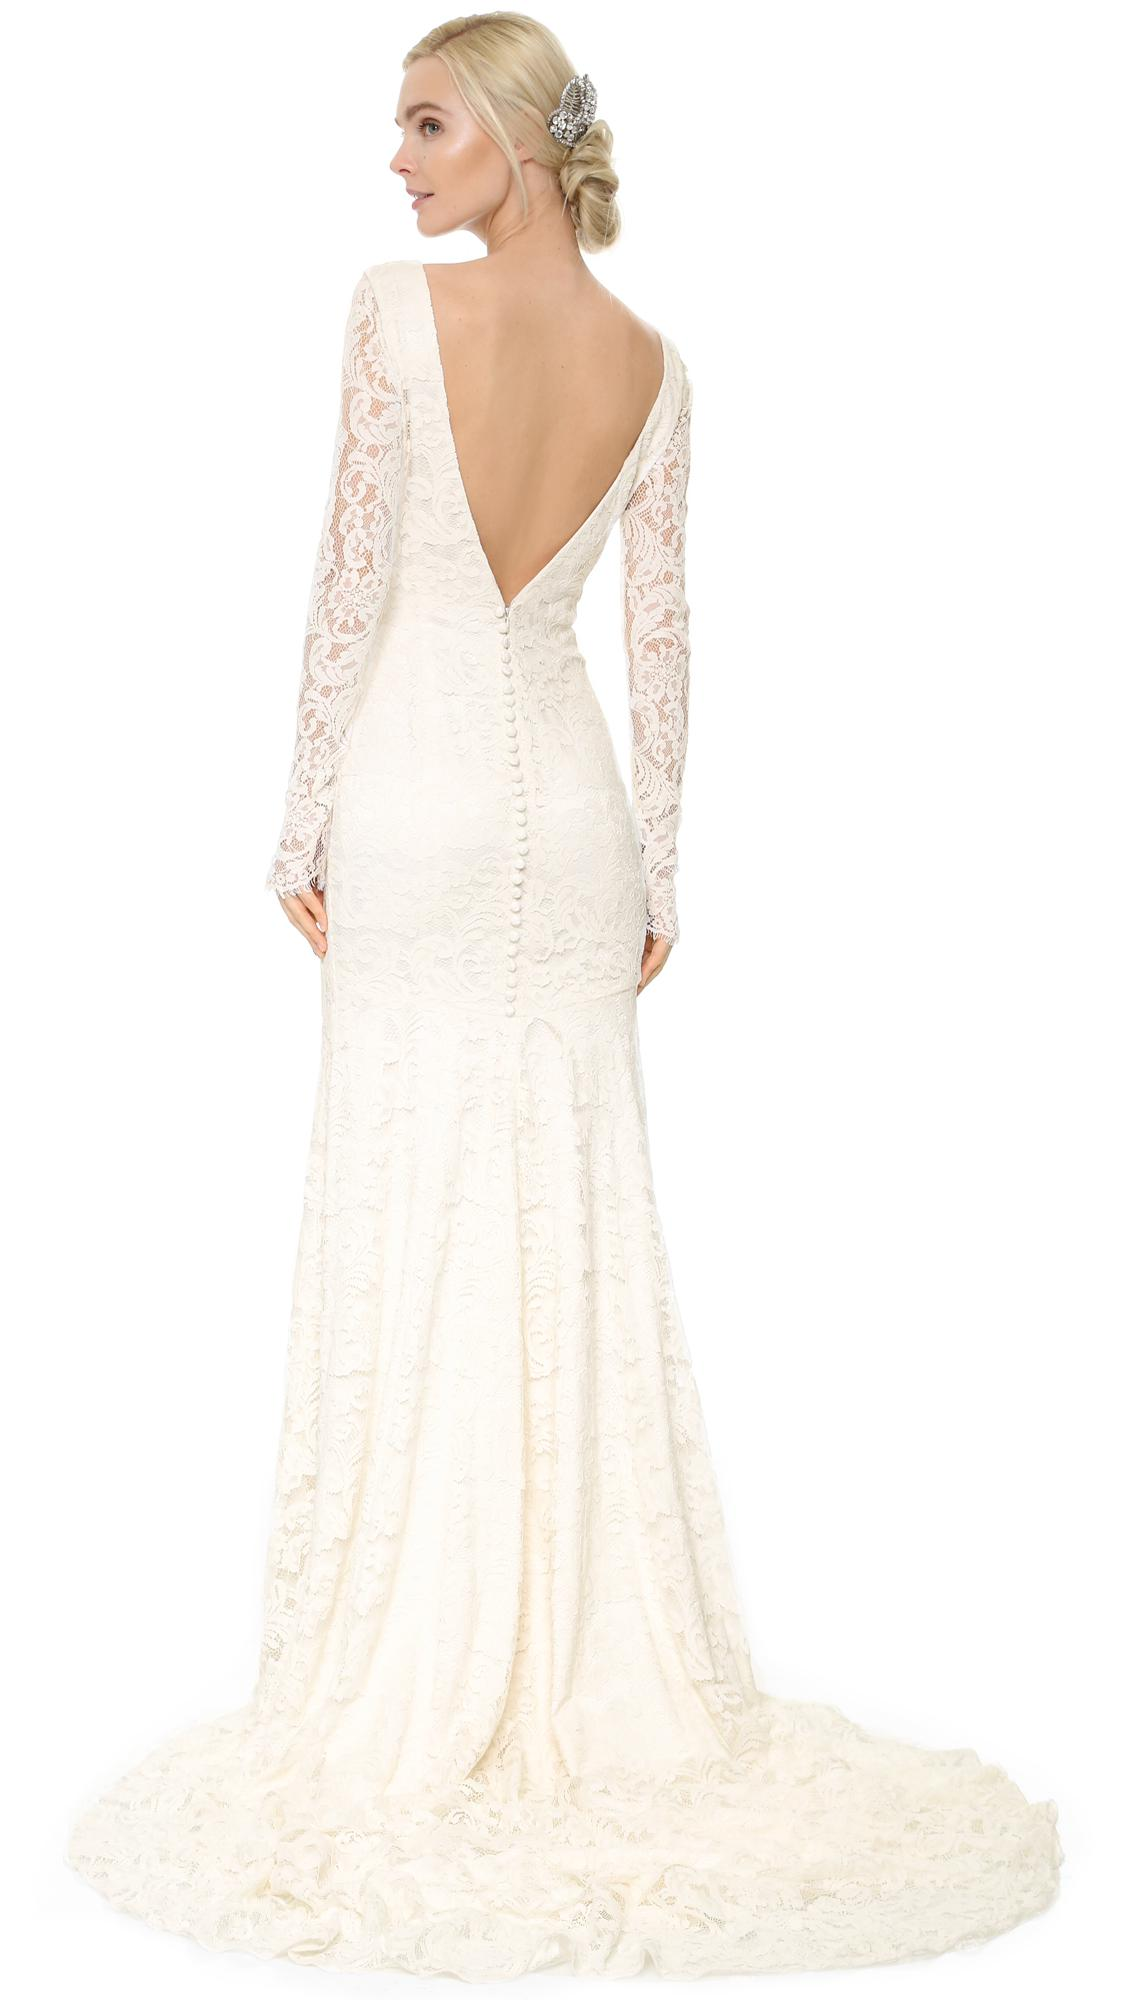 Lyst - Theia Nicole Lace Gown in White